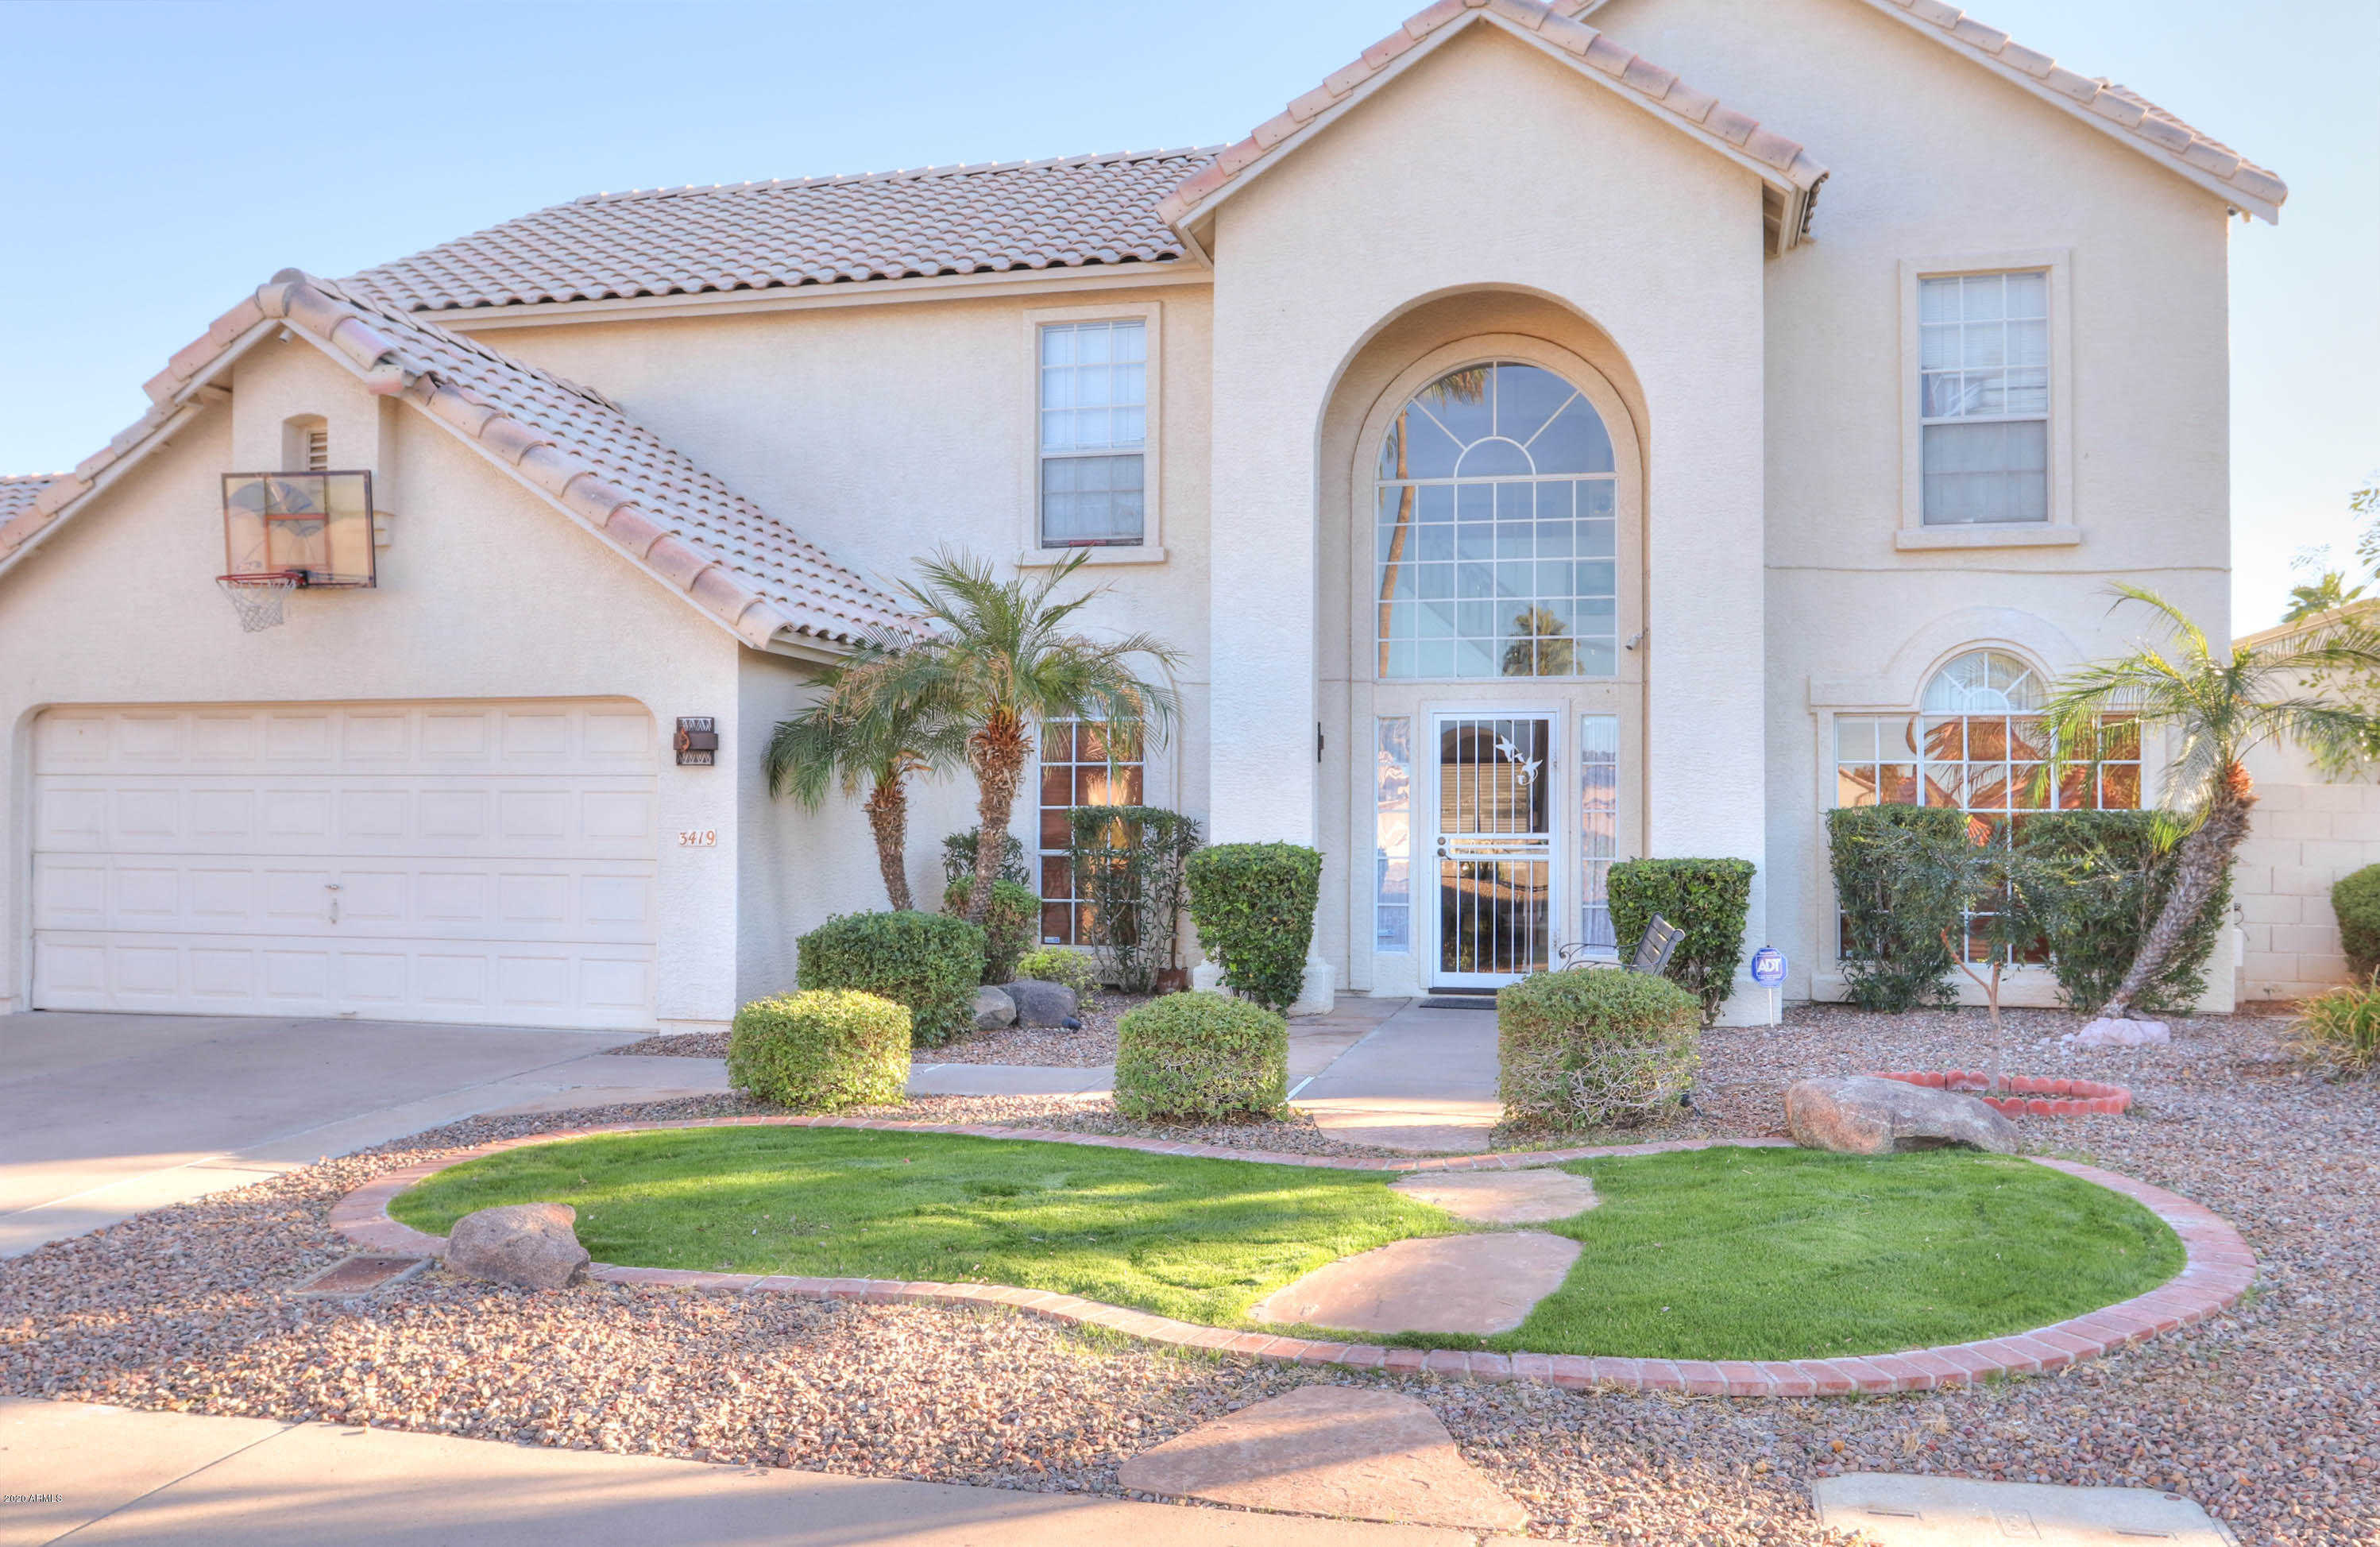 $599,000 - 4Br/3Ba - Home for Sale in Vistas At North Gate, Phoenix